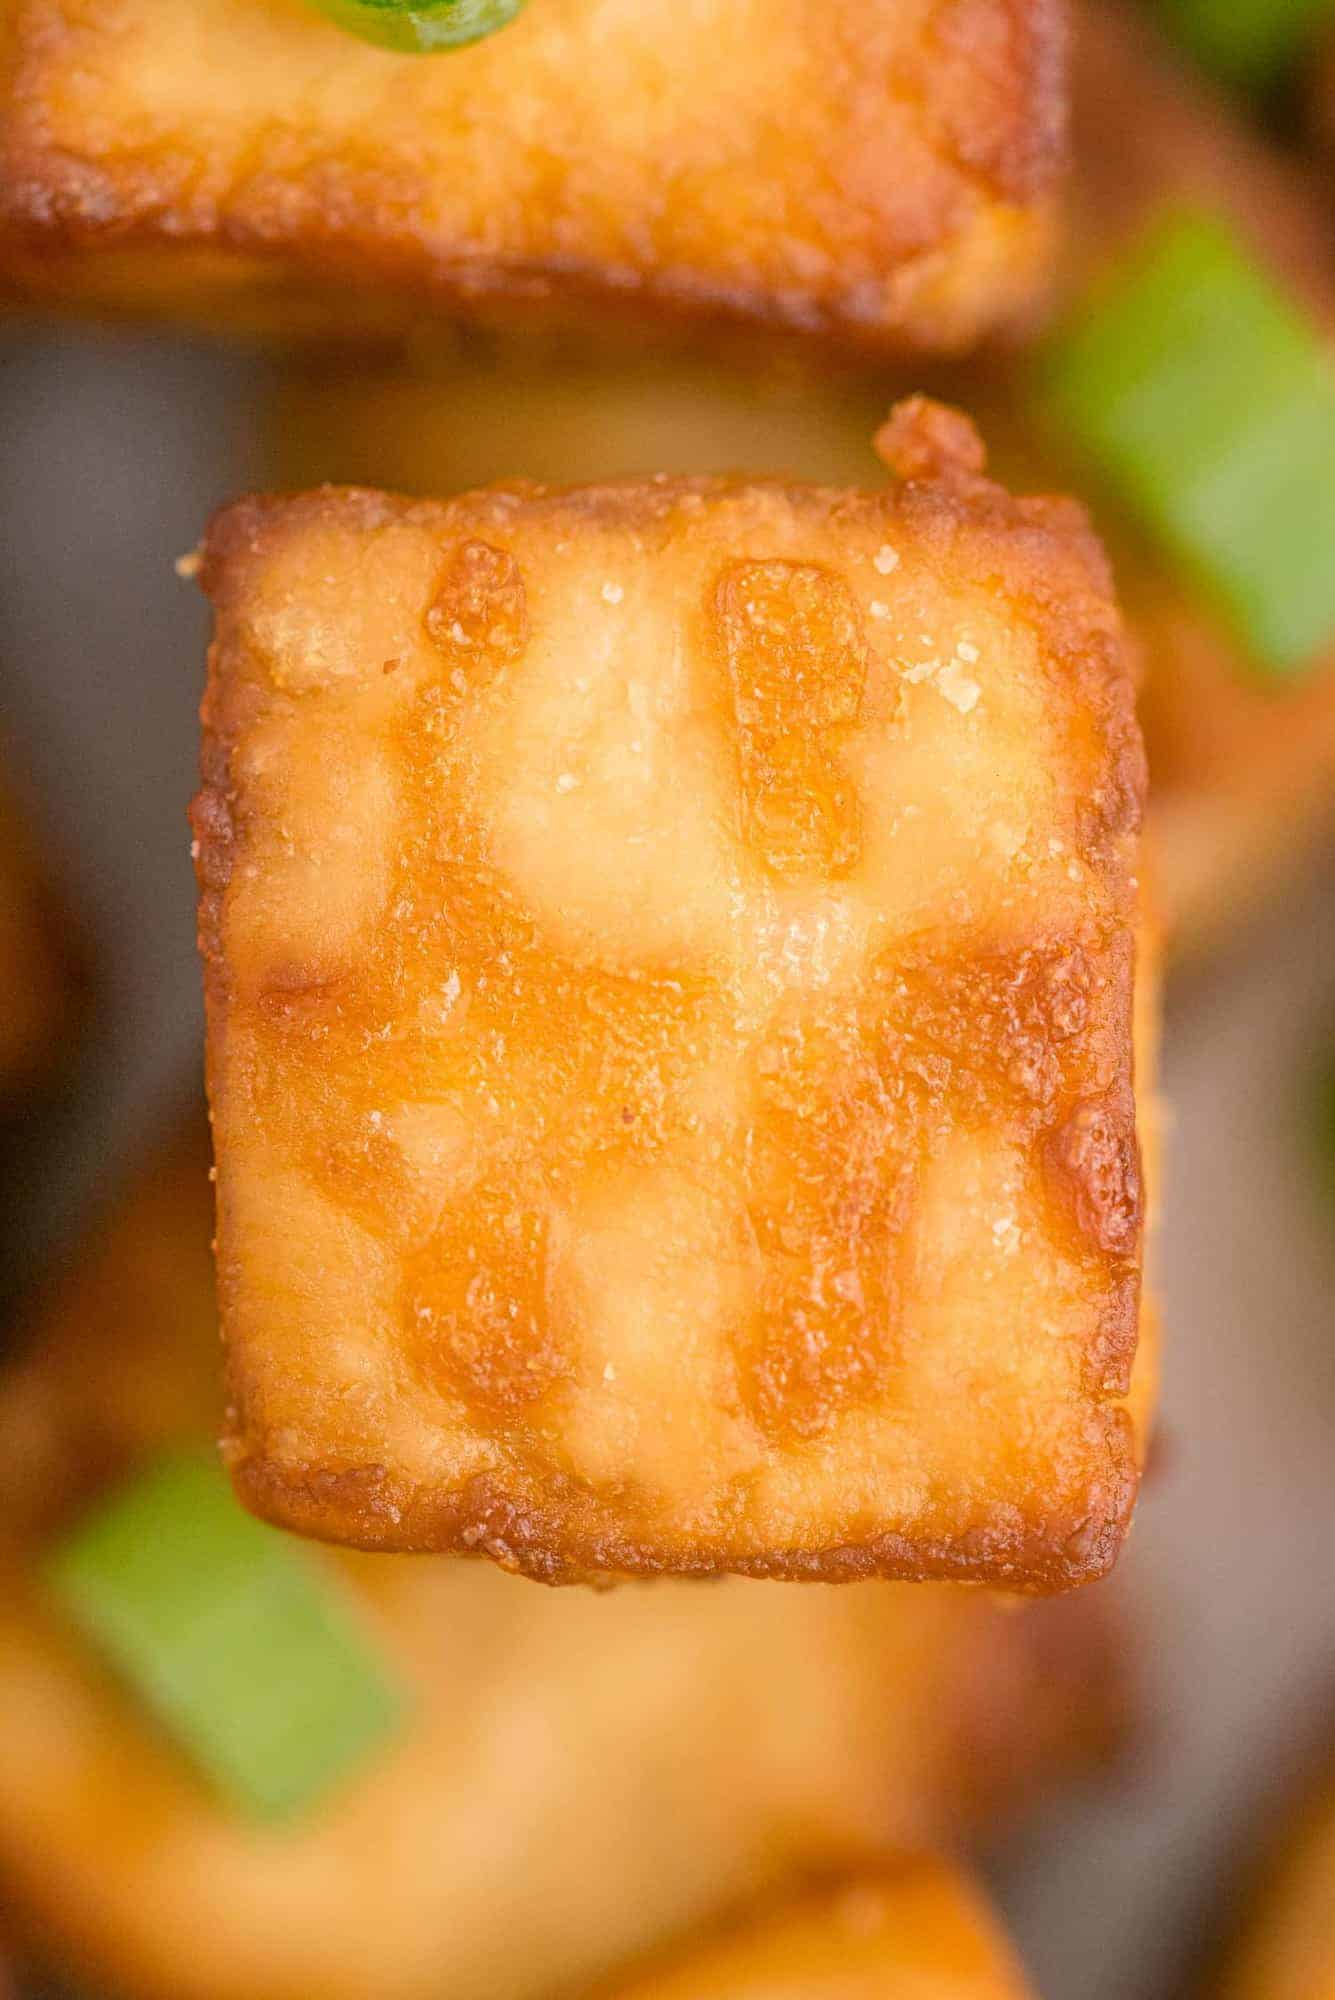 Very close up view of crispy cooked tofu.